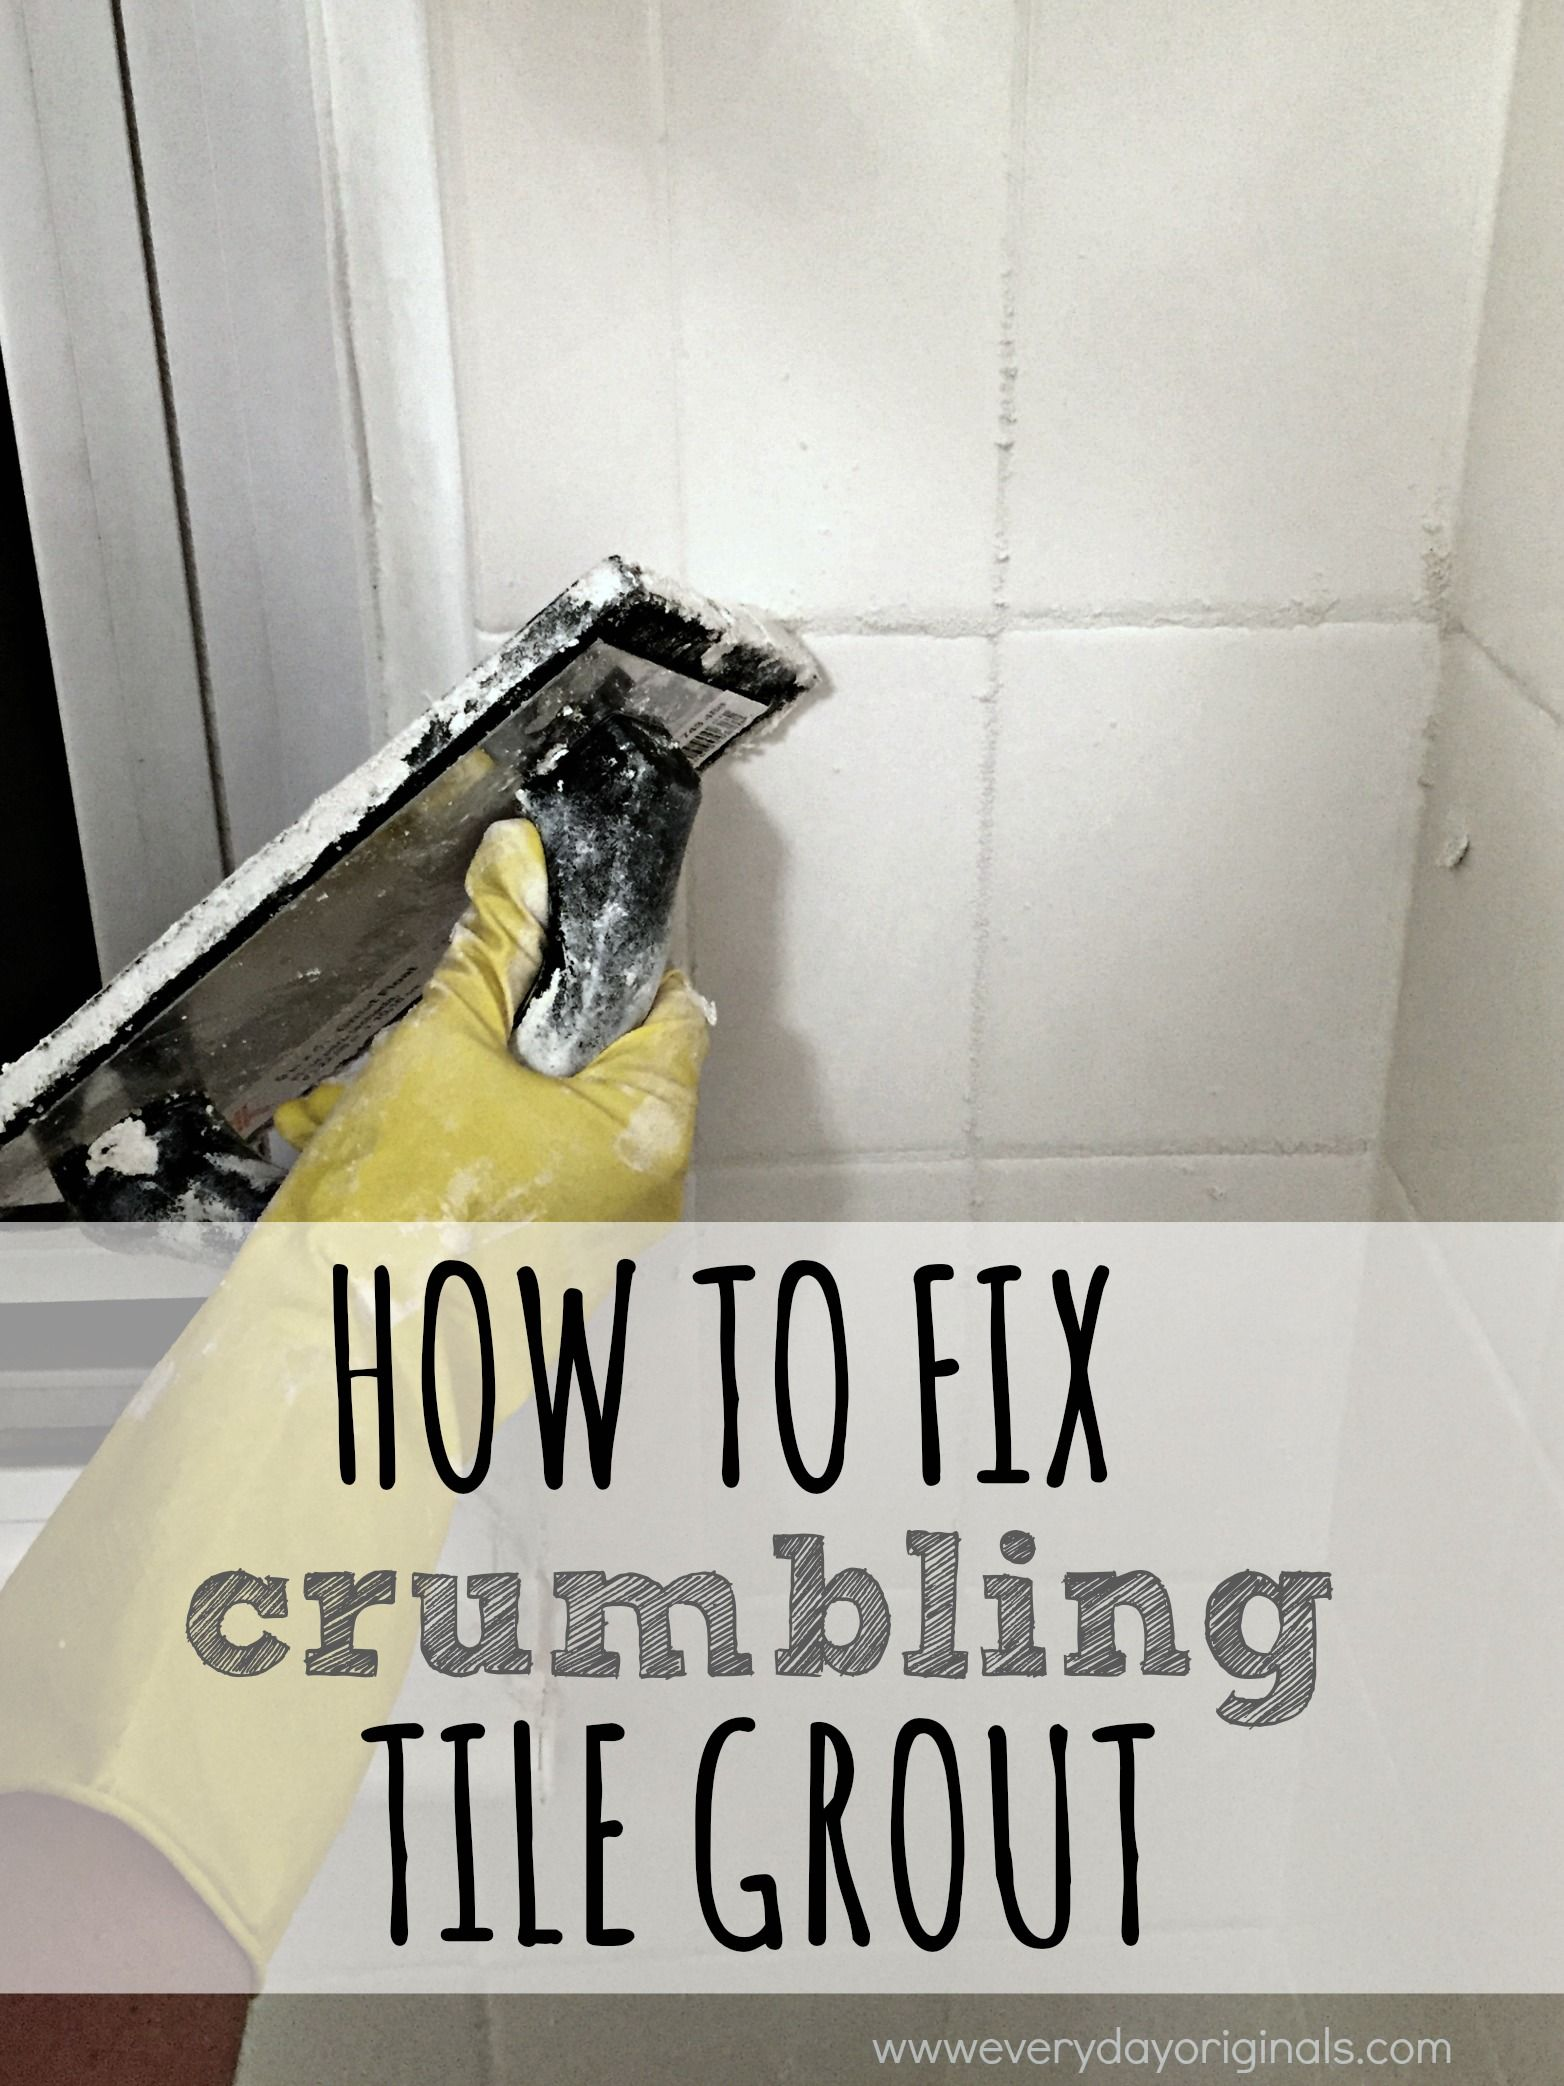 How to fix crumbling tile grout an easy fix for a problem many how to fix crumbling tile grout an easy fix for a problem many bathrooms experience dailygadgetfo Images